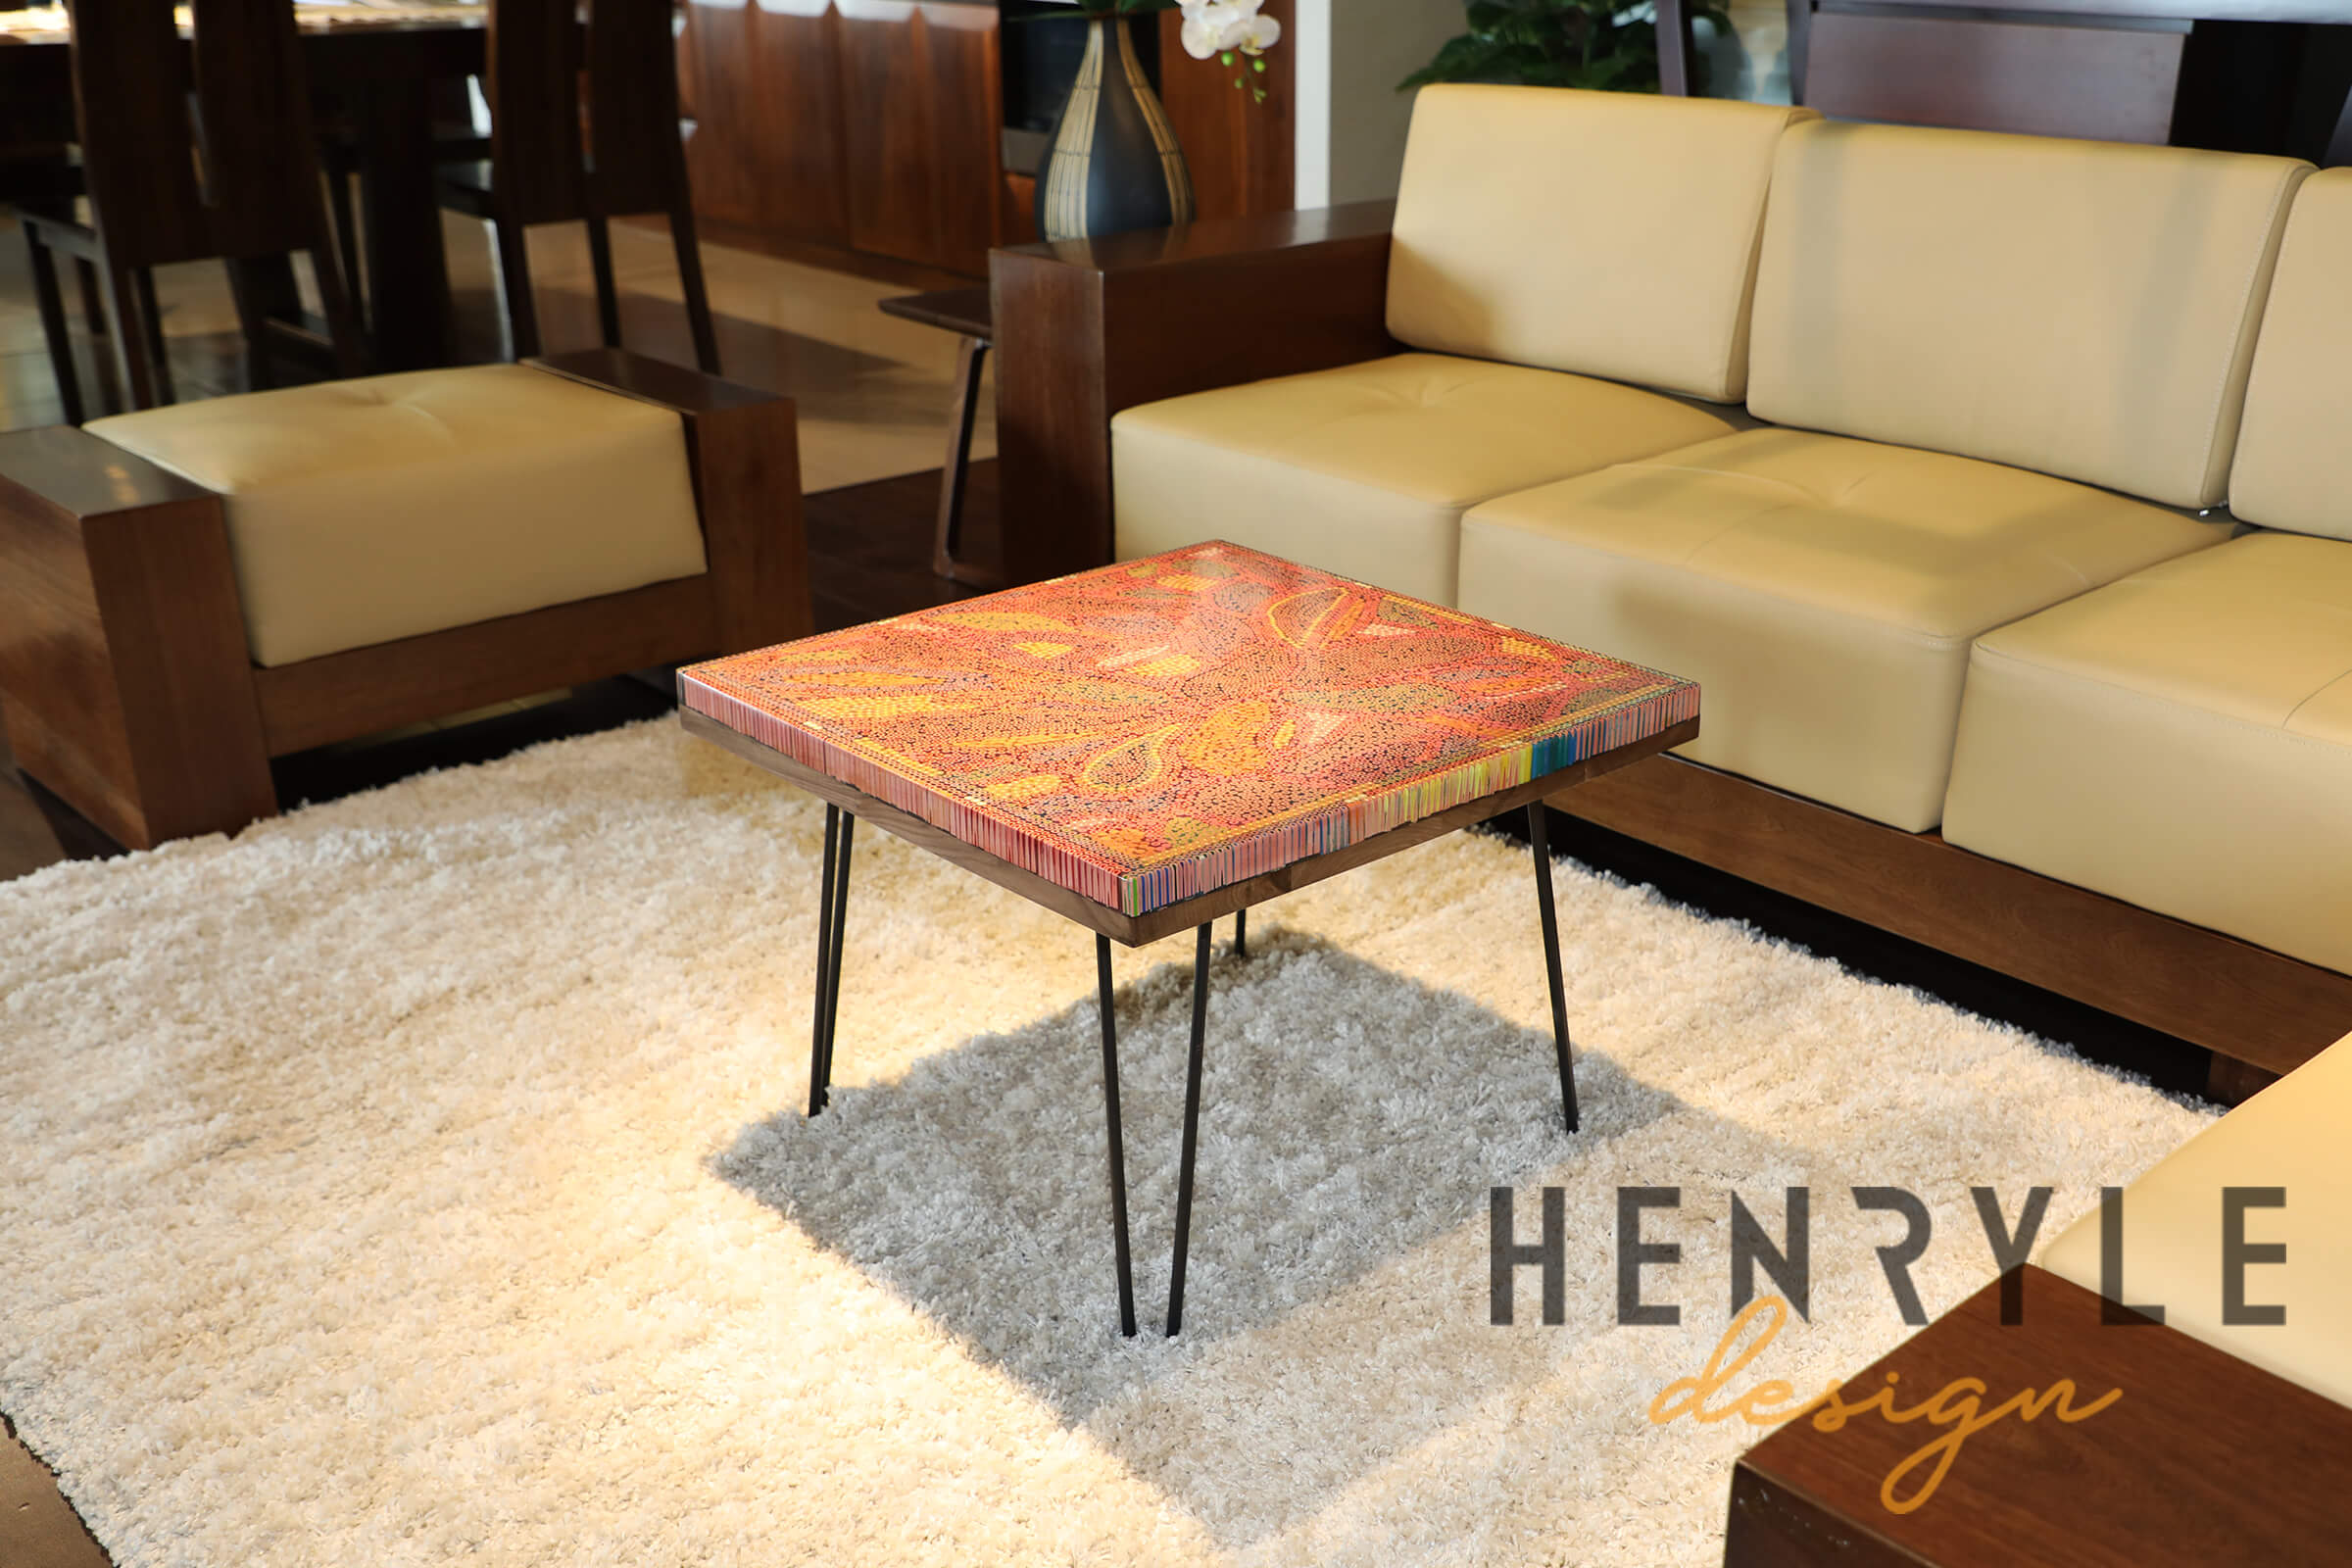 Lotus Pond Colored-Pencil Coffee Table